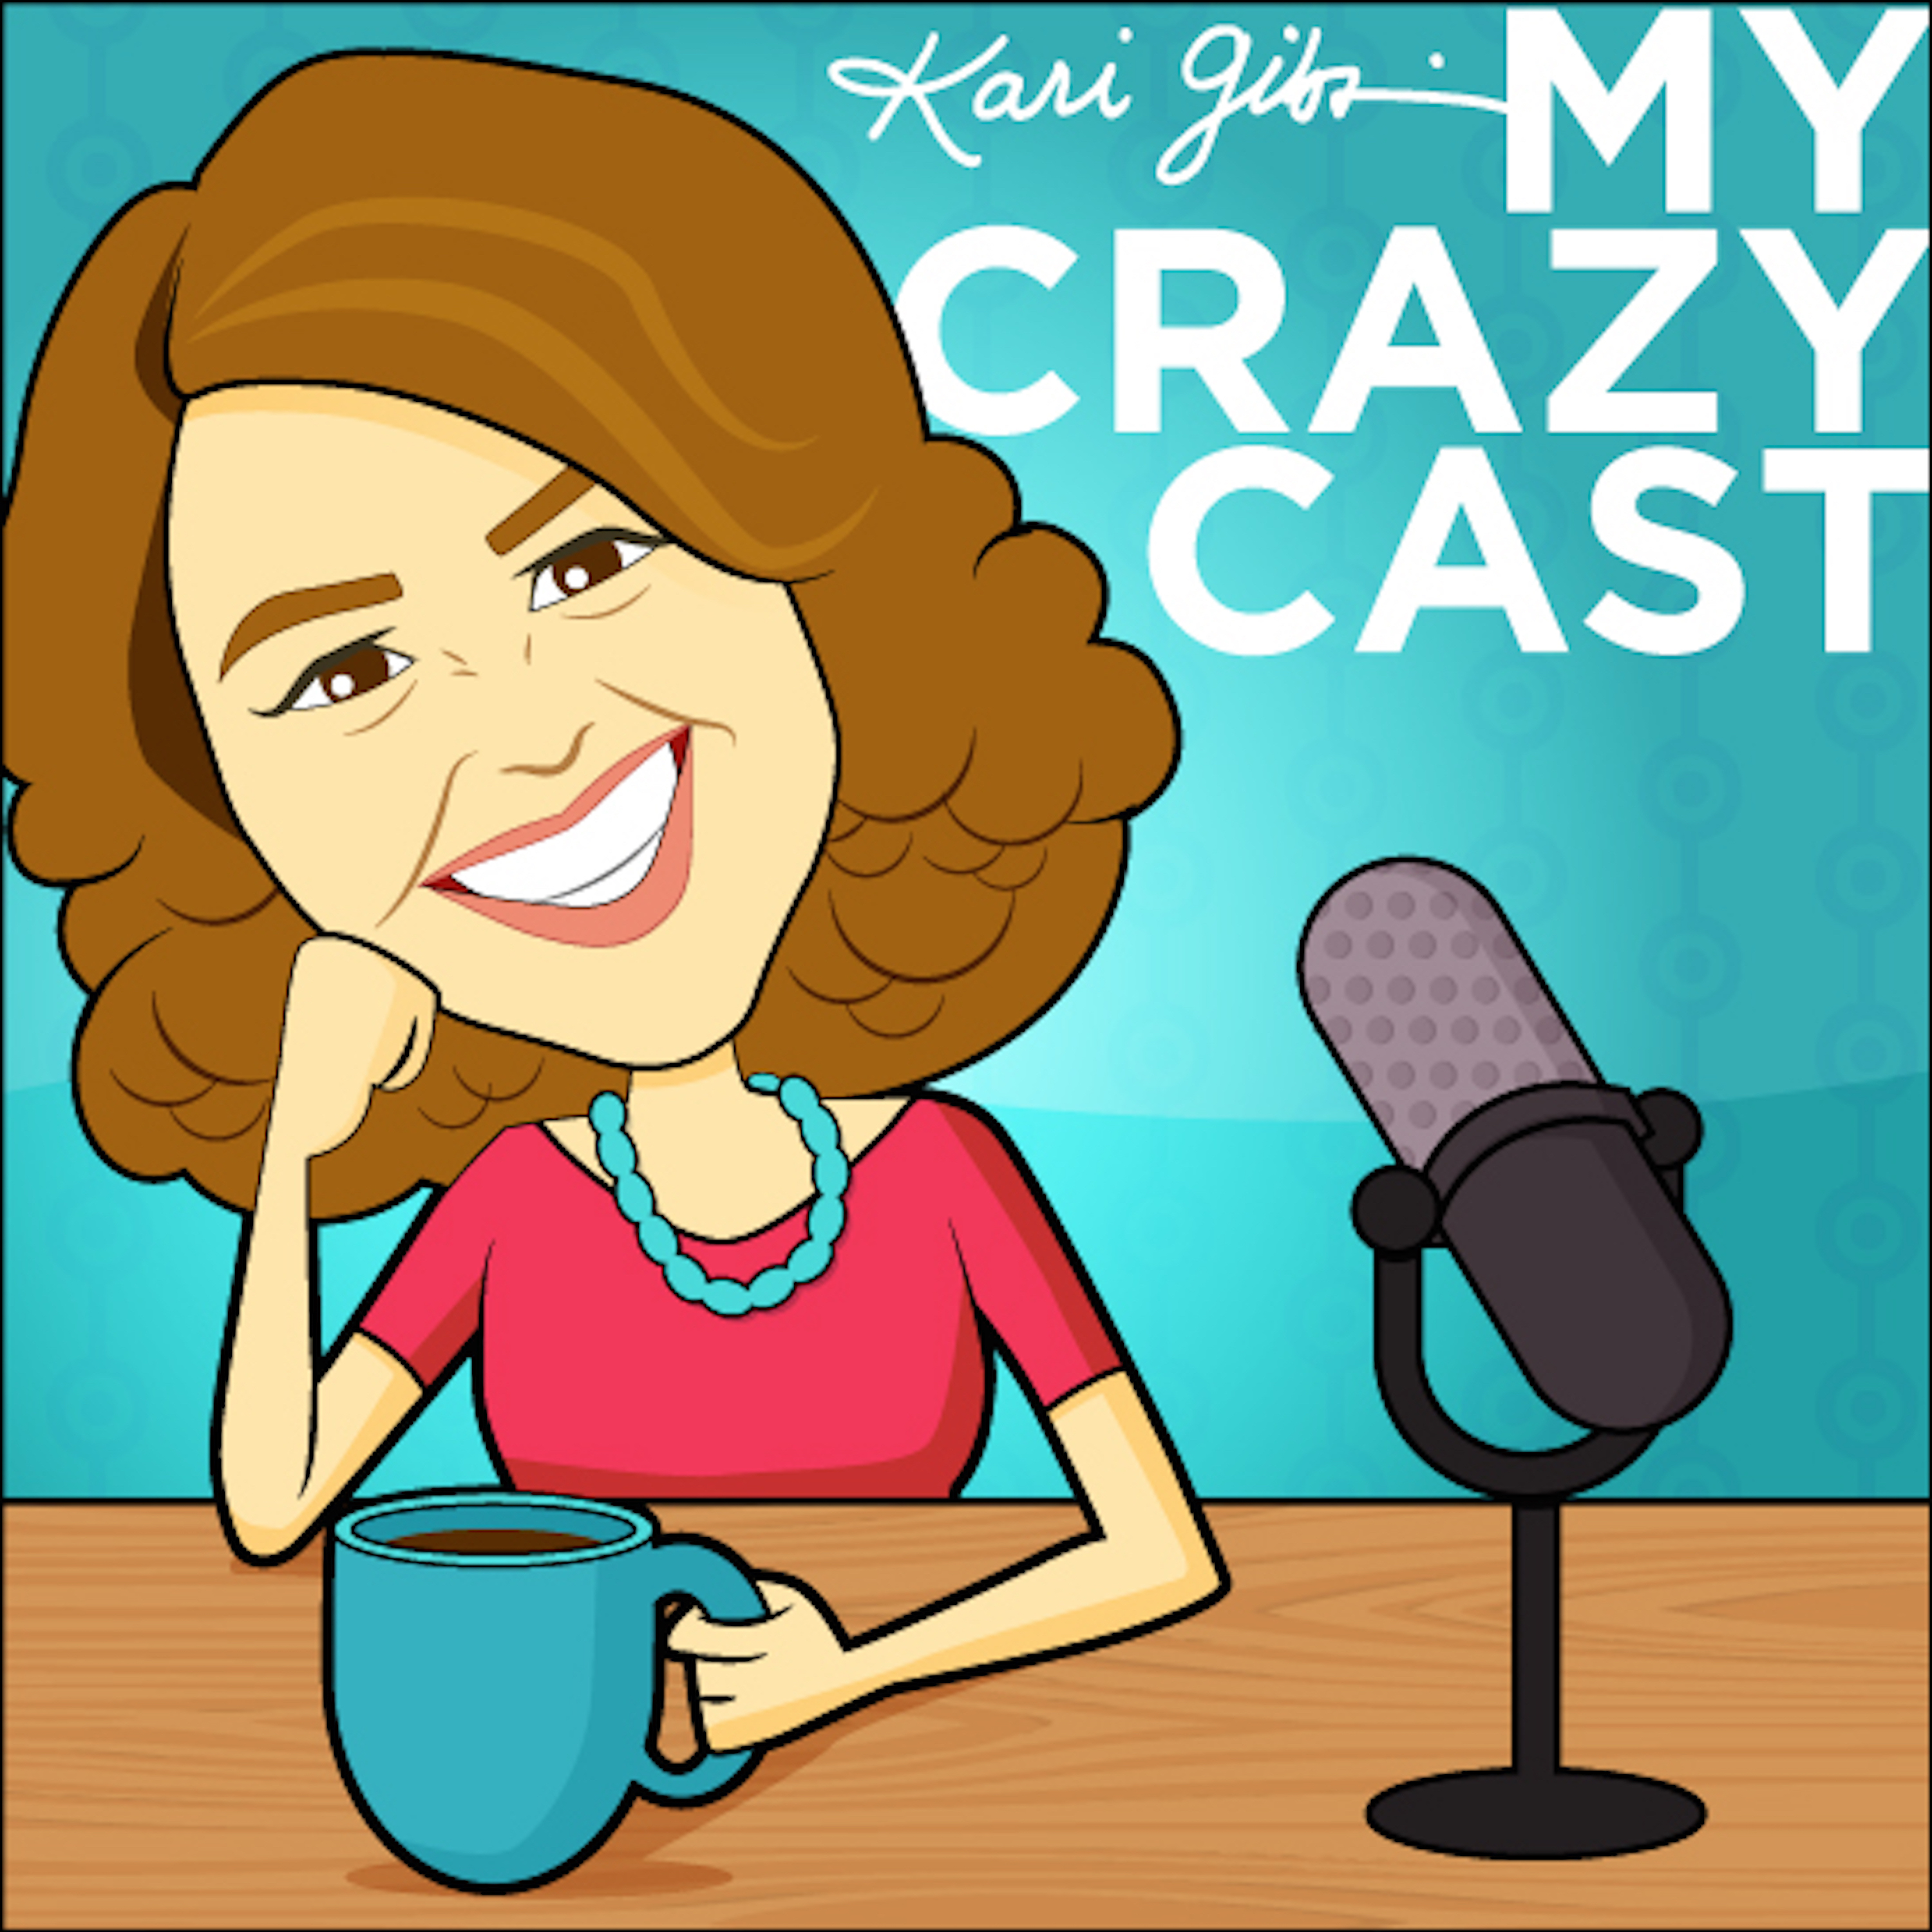 Kari Gibson's My Crazy Cast